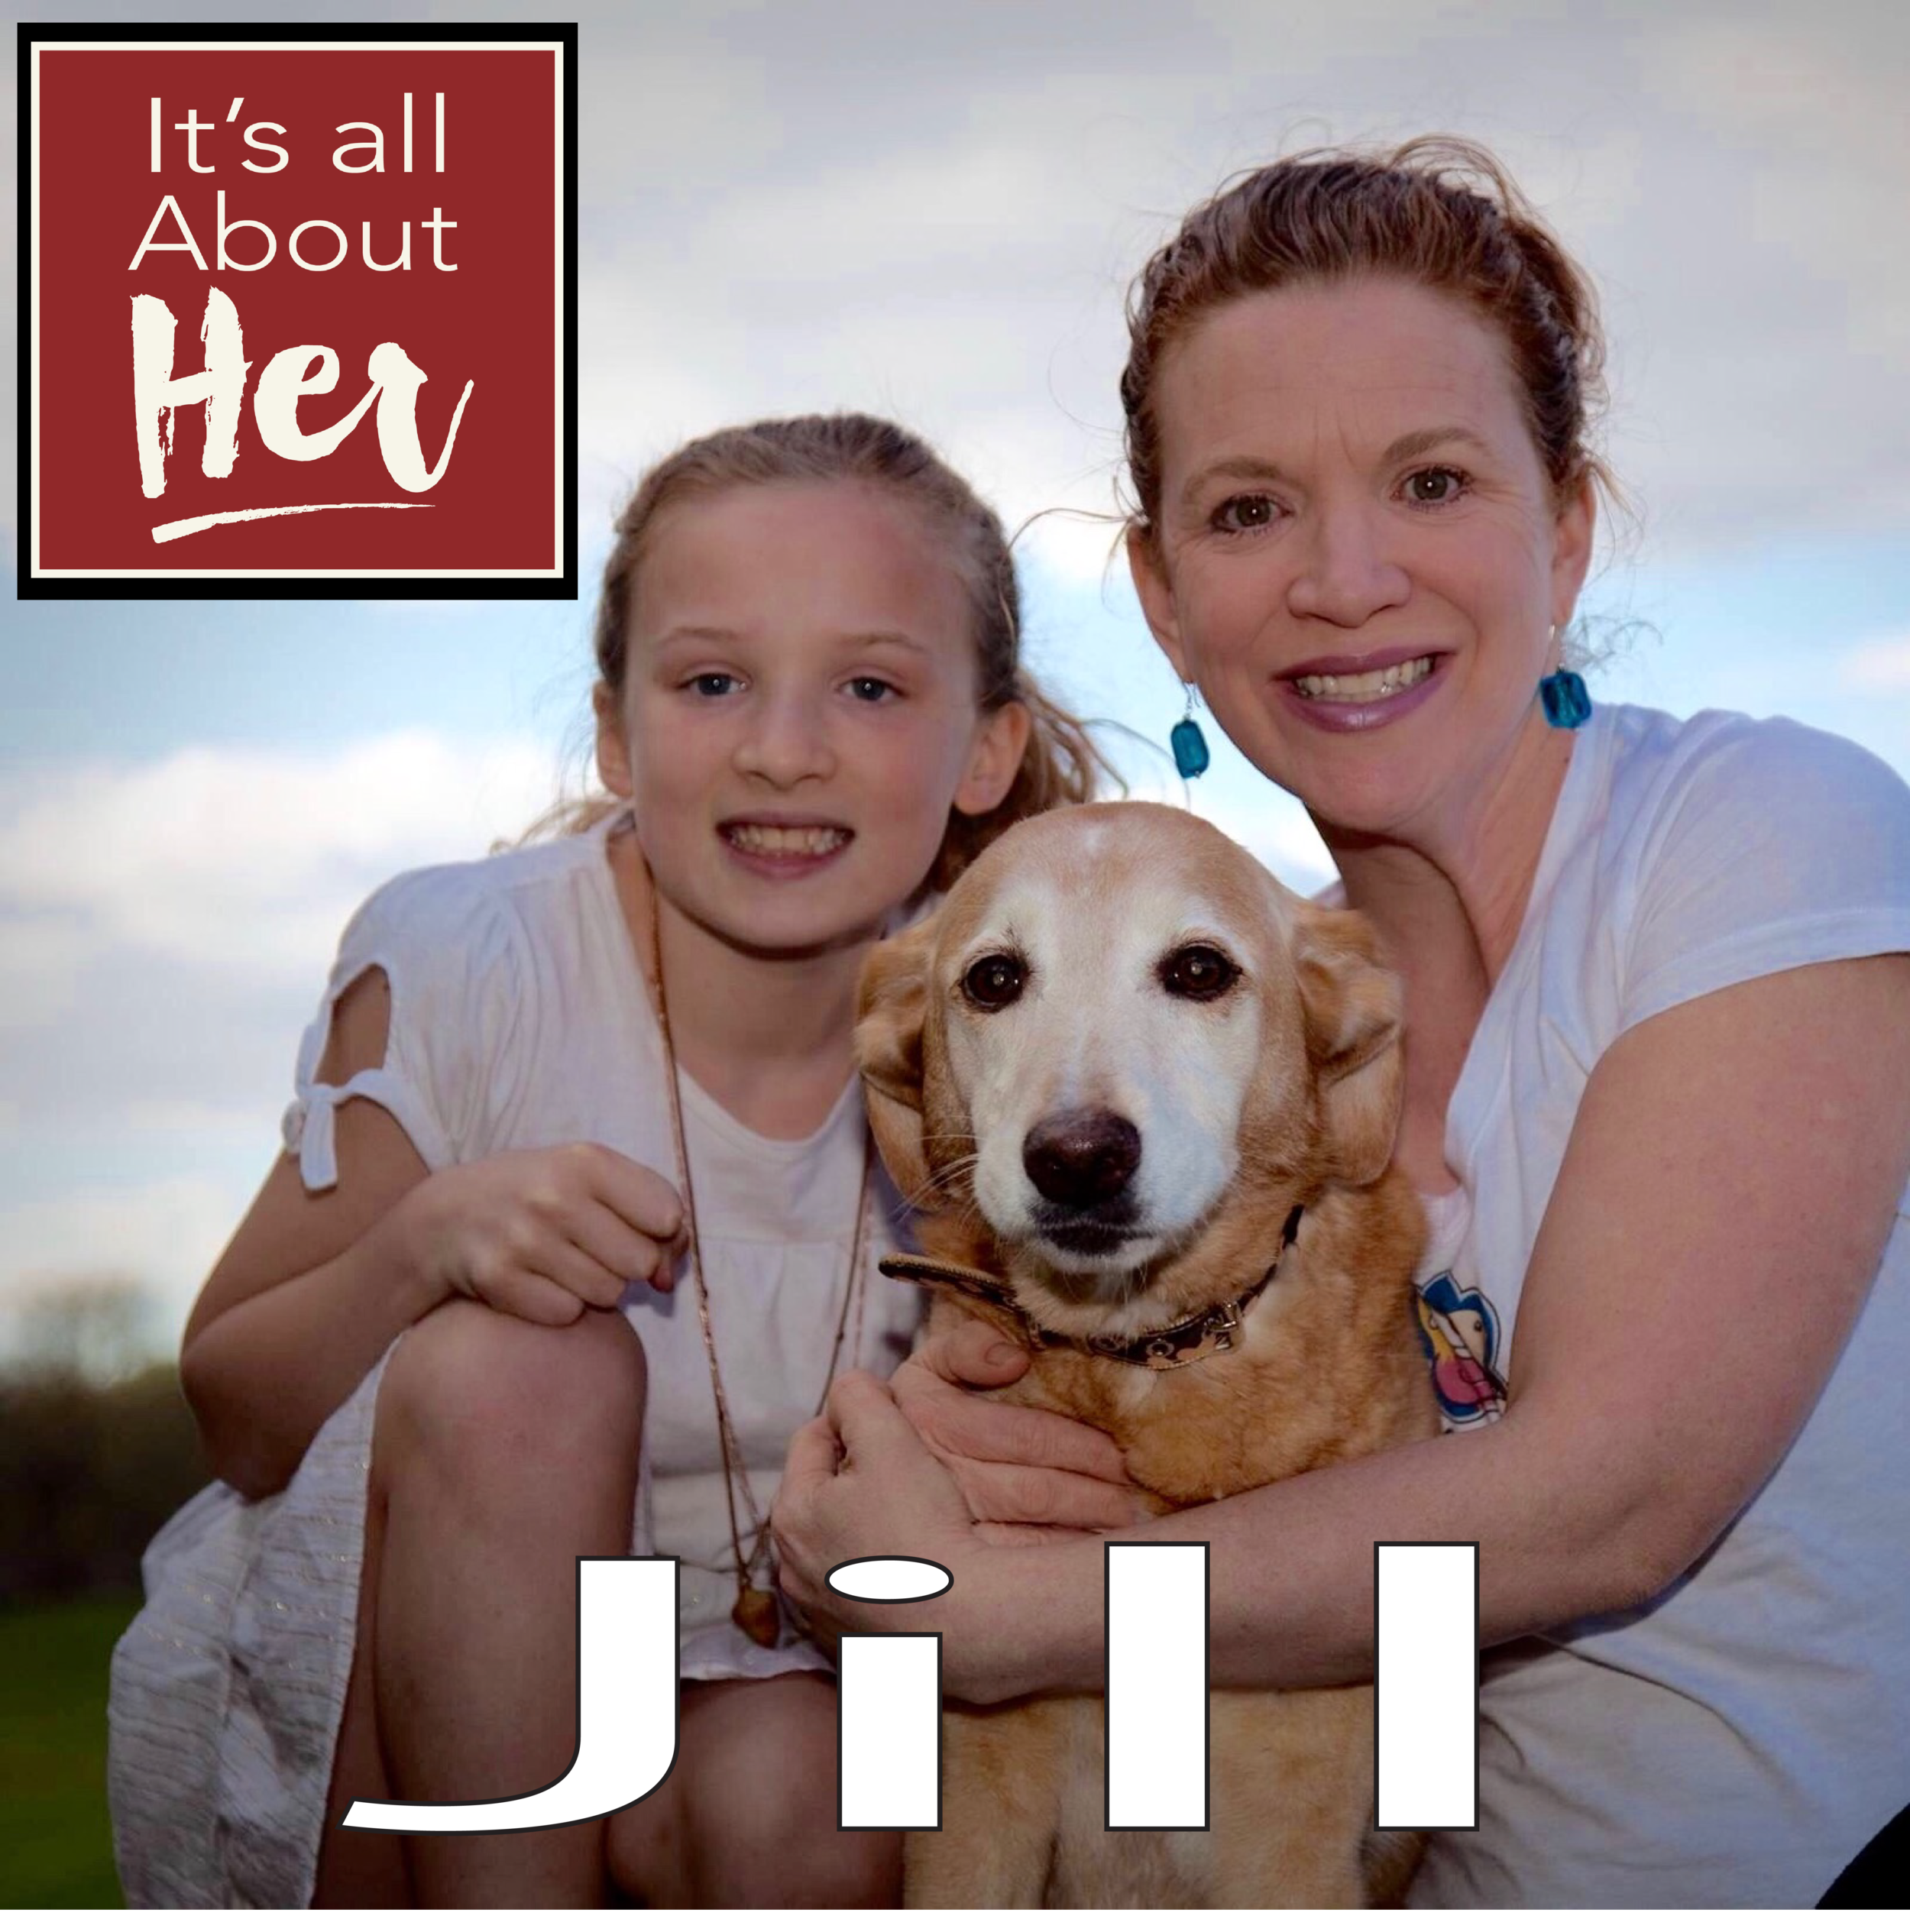 Hello everyone! In this episode of It's all about Her, you meet one of the finalist for Her Sprit's $5000 grant, Jill Hildebrandt, Owner and Founder of Amelia & Holly's.  Which is a company committed to making healthy snacks for your doggy's.  Named after her daughter, Emelia and her dog, Holly.  She is a business owner and much more, professor and performer to name a few.  We had some great fun. I hope you enjoy the conversation!